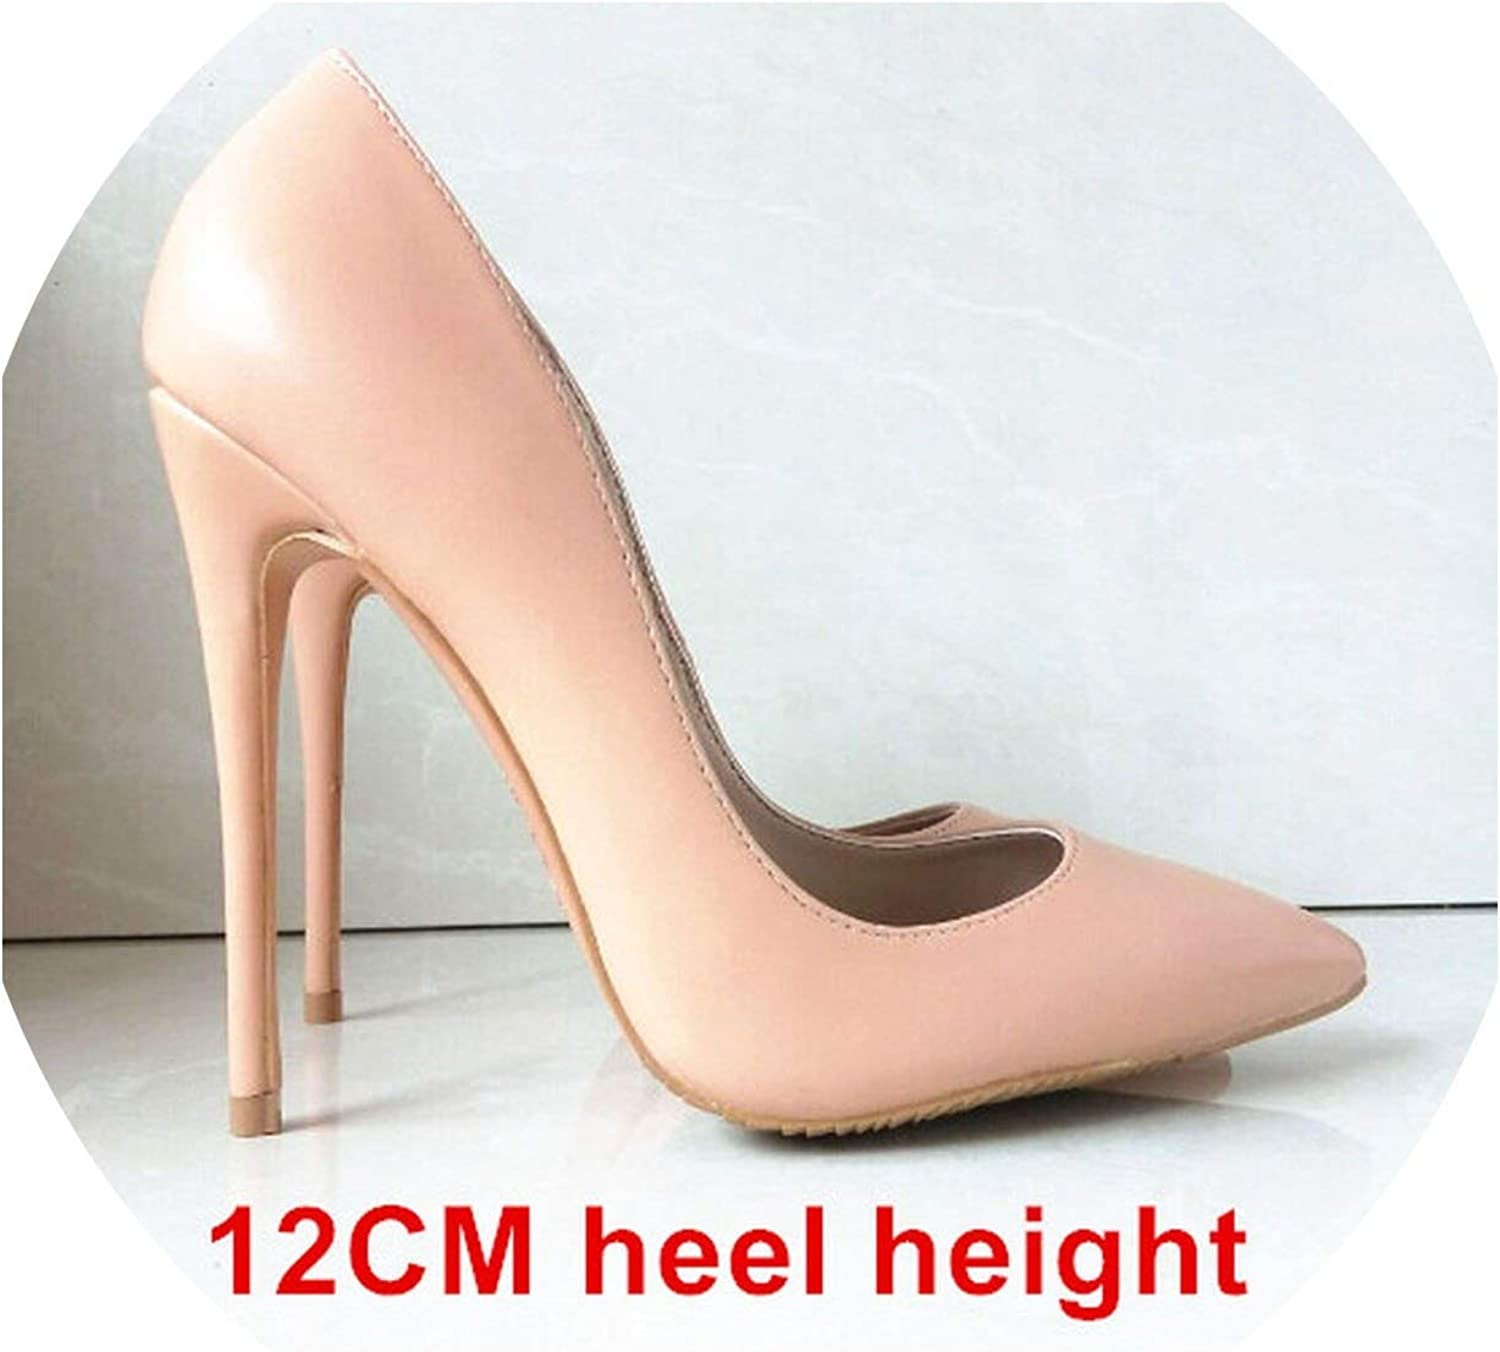 Heeled-Sandalsshoes Woman High Heels Women shoes Pumps Stilettos shoes for Women Black High Heels 12Cm Pu Leather Wedding shoes,Nude 12Cm Heel,6.5